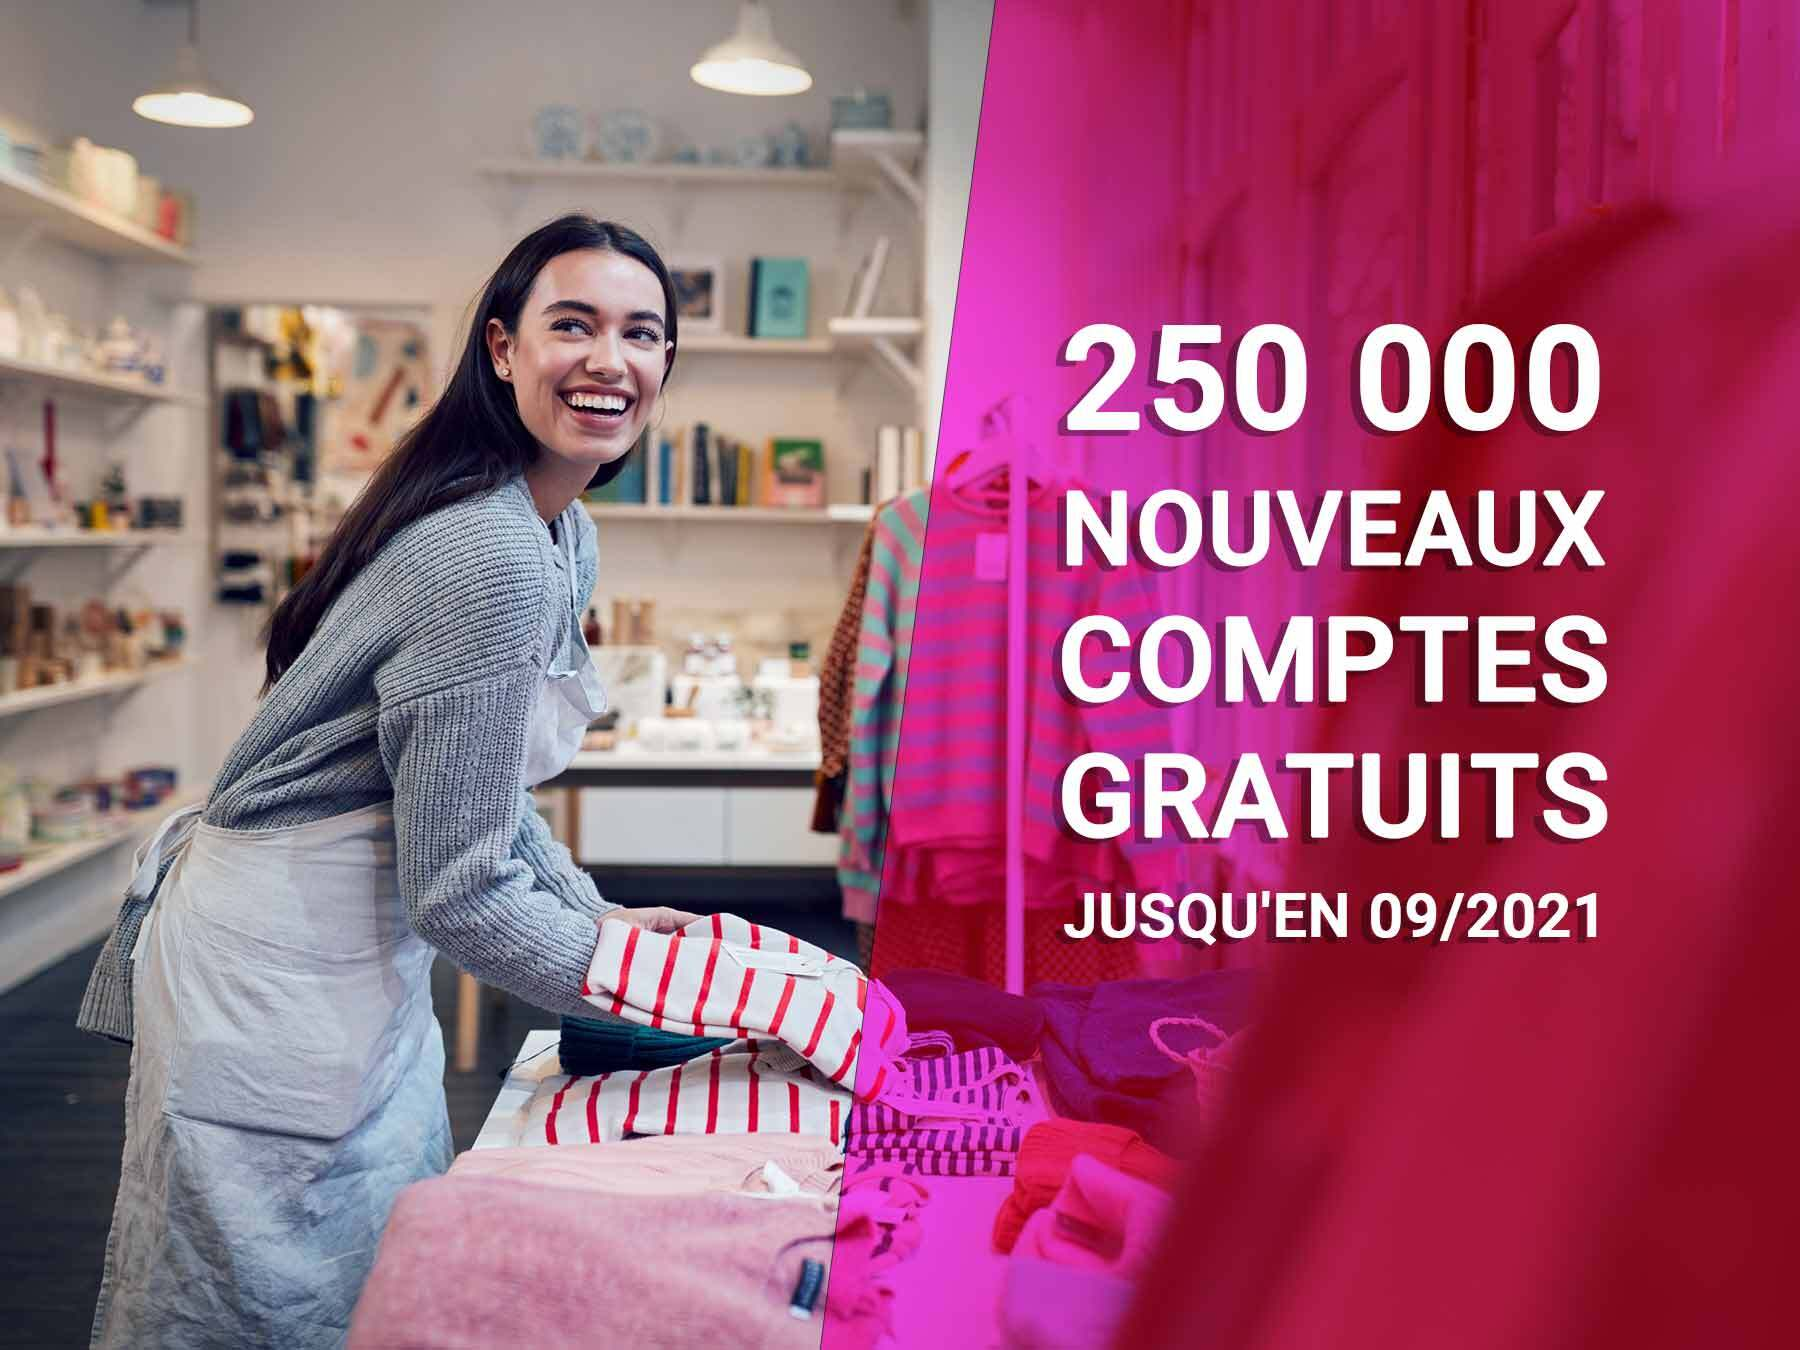 rankingCoach offre 250 000 comptes rankingCoach FREE supplémentaires